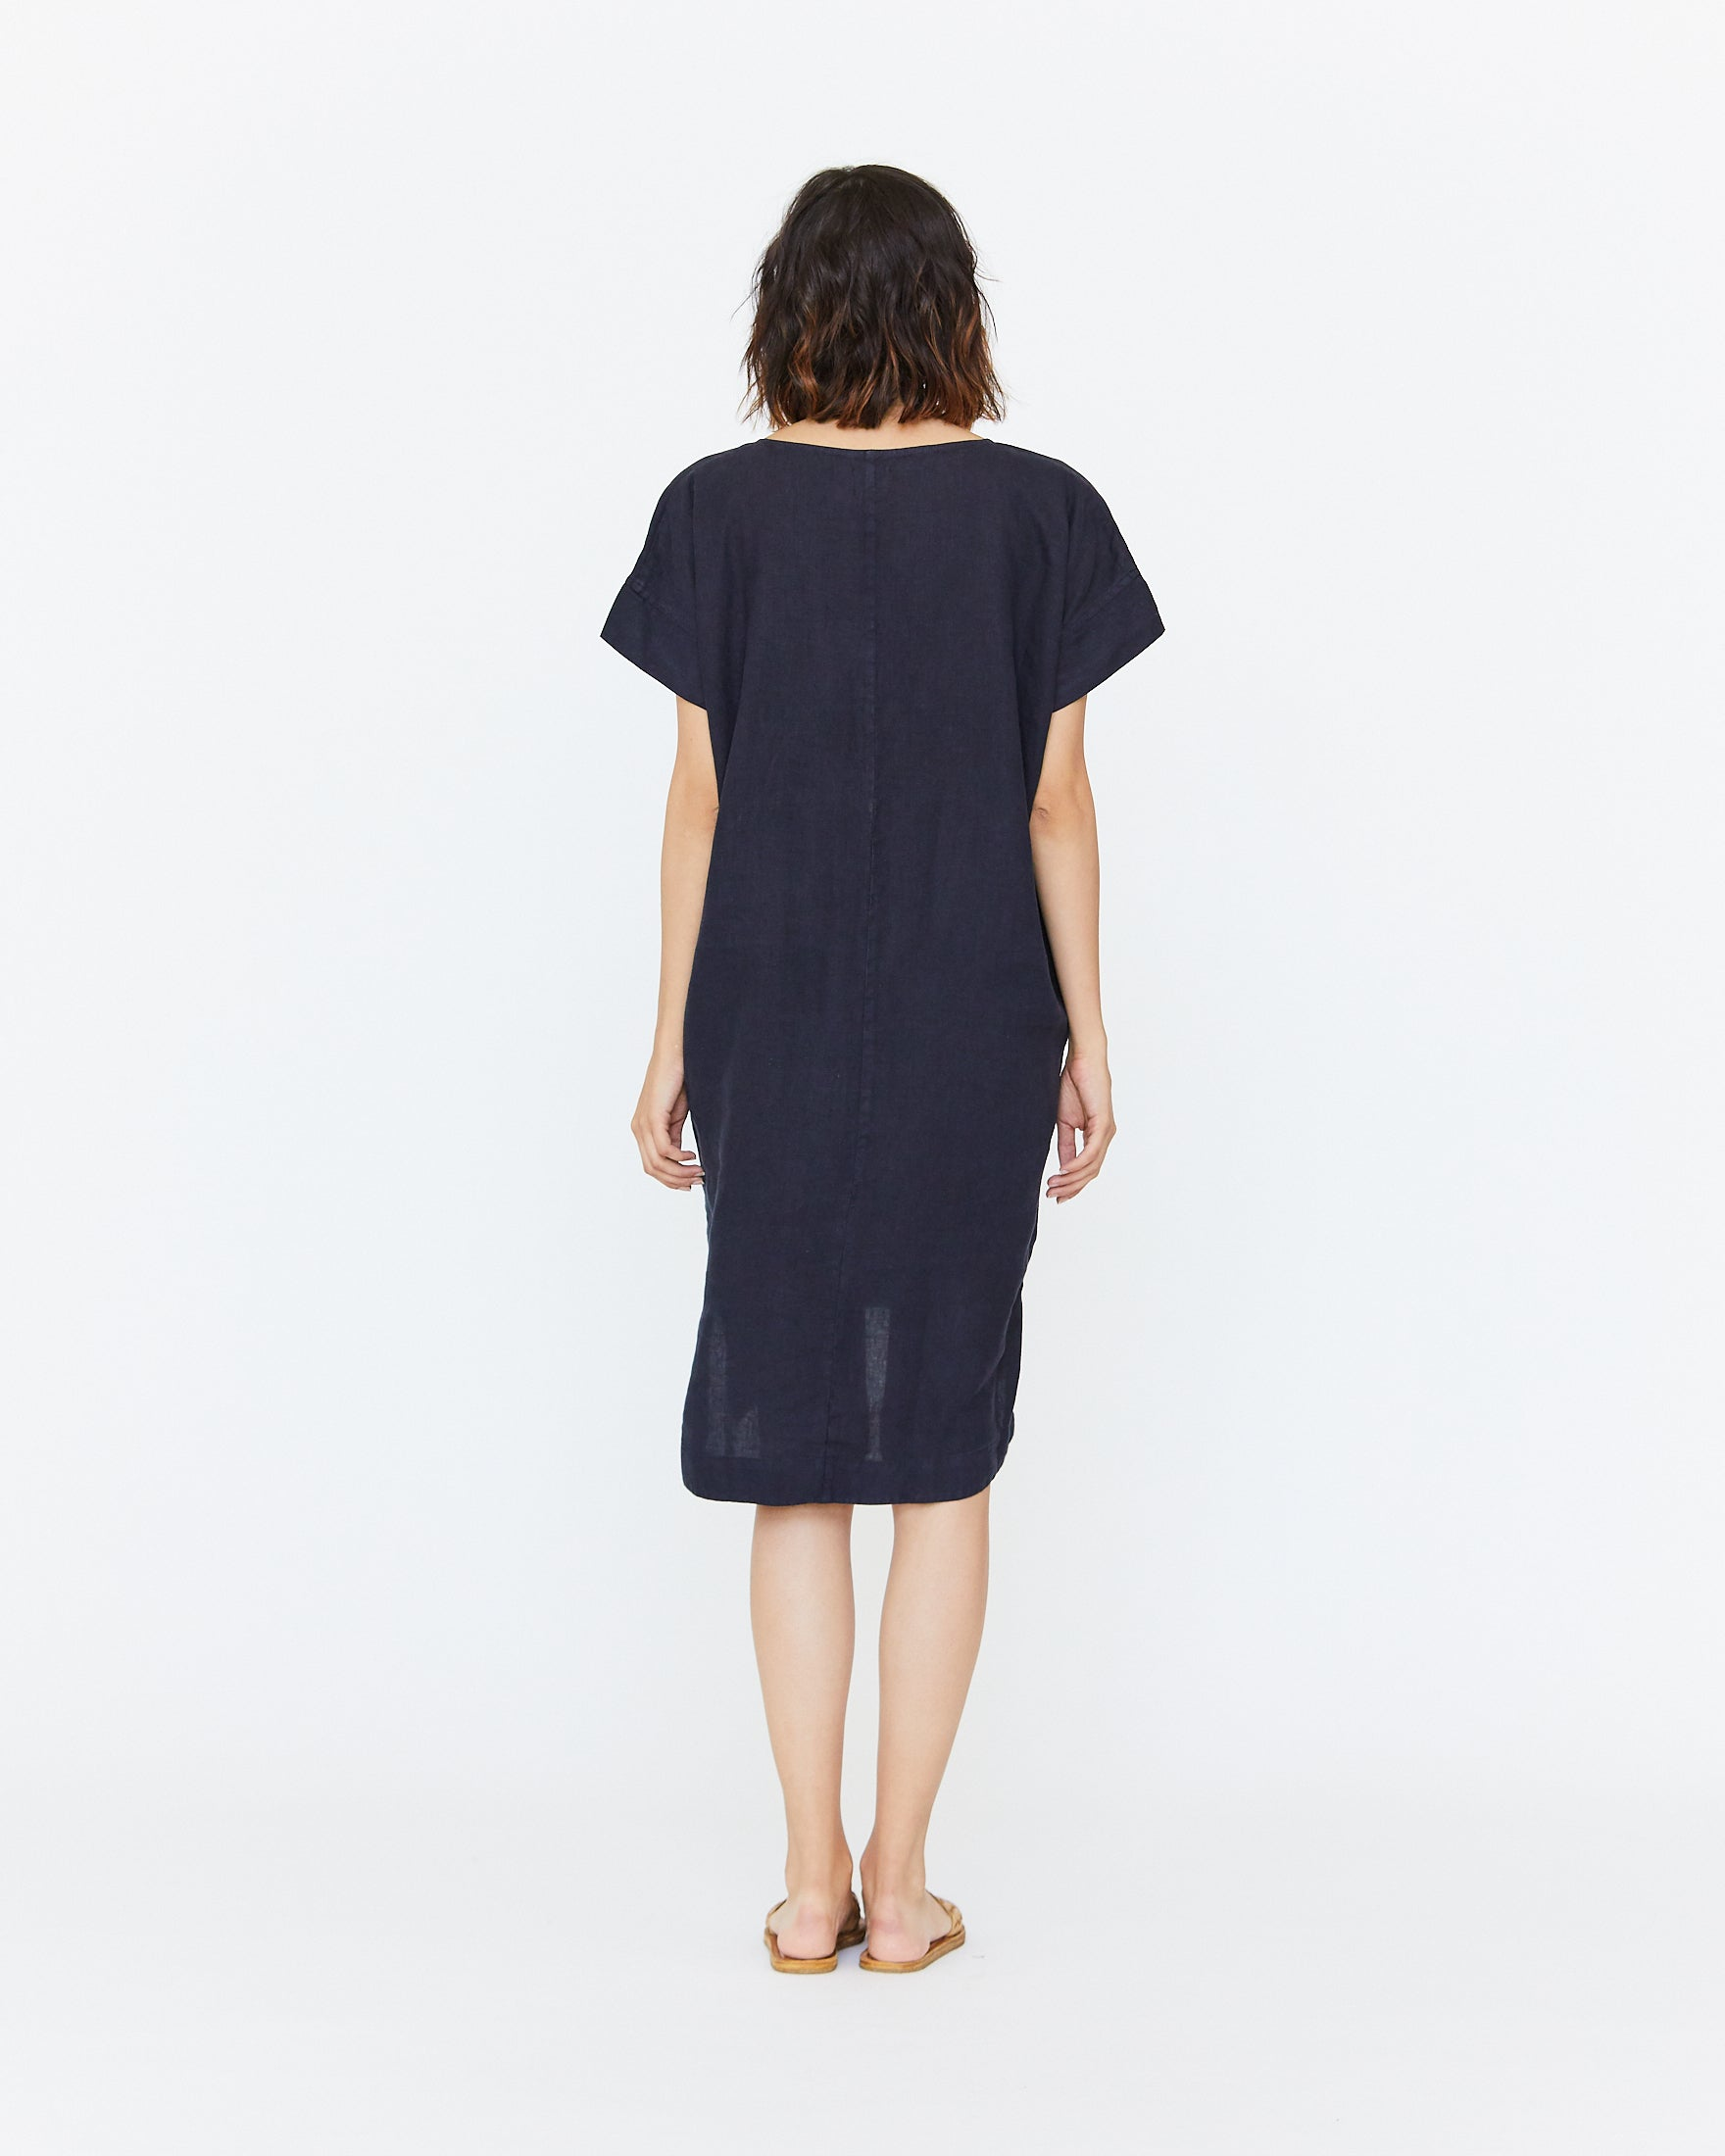 ALICE TUNIC - MIDNIGHT